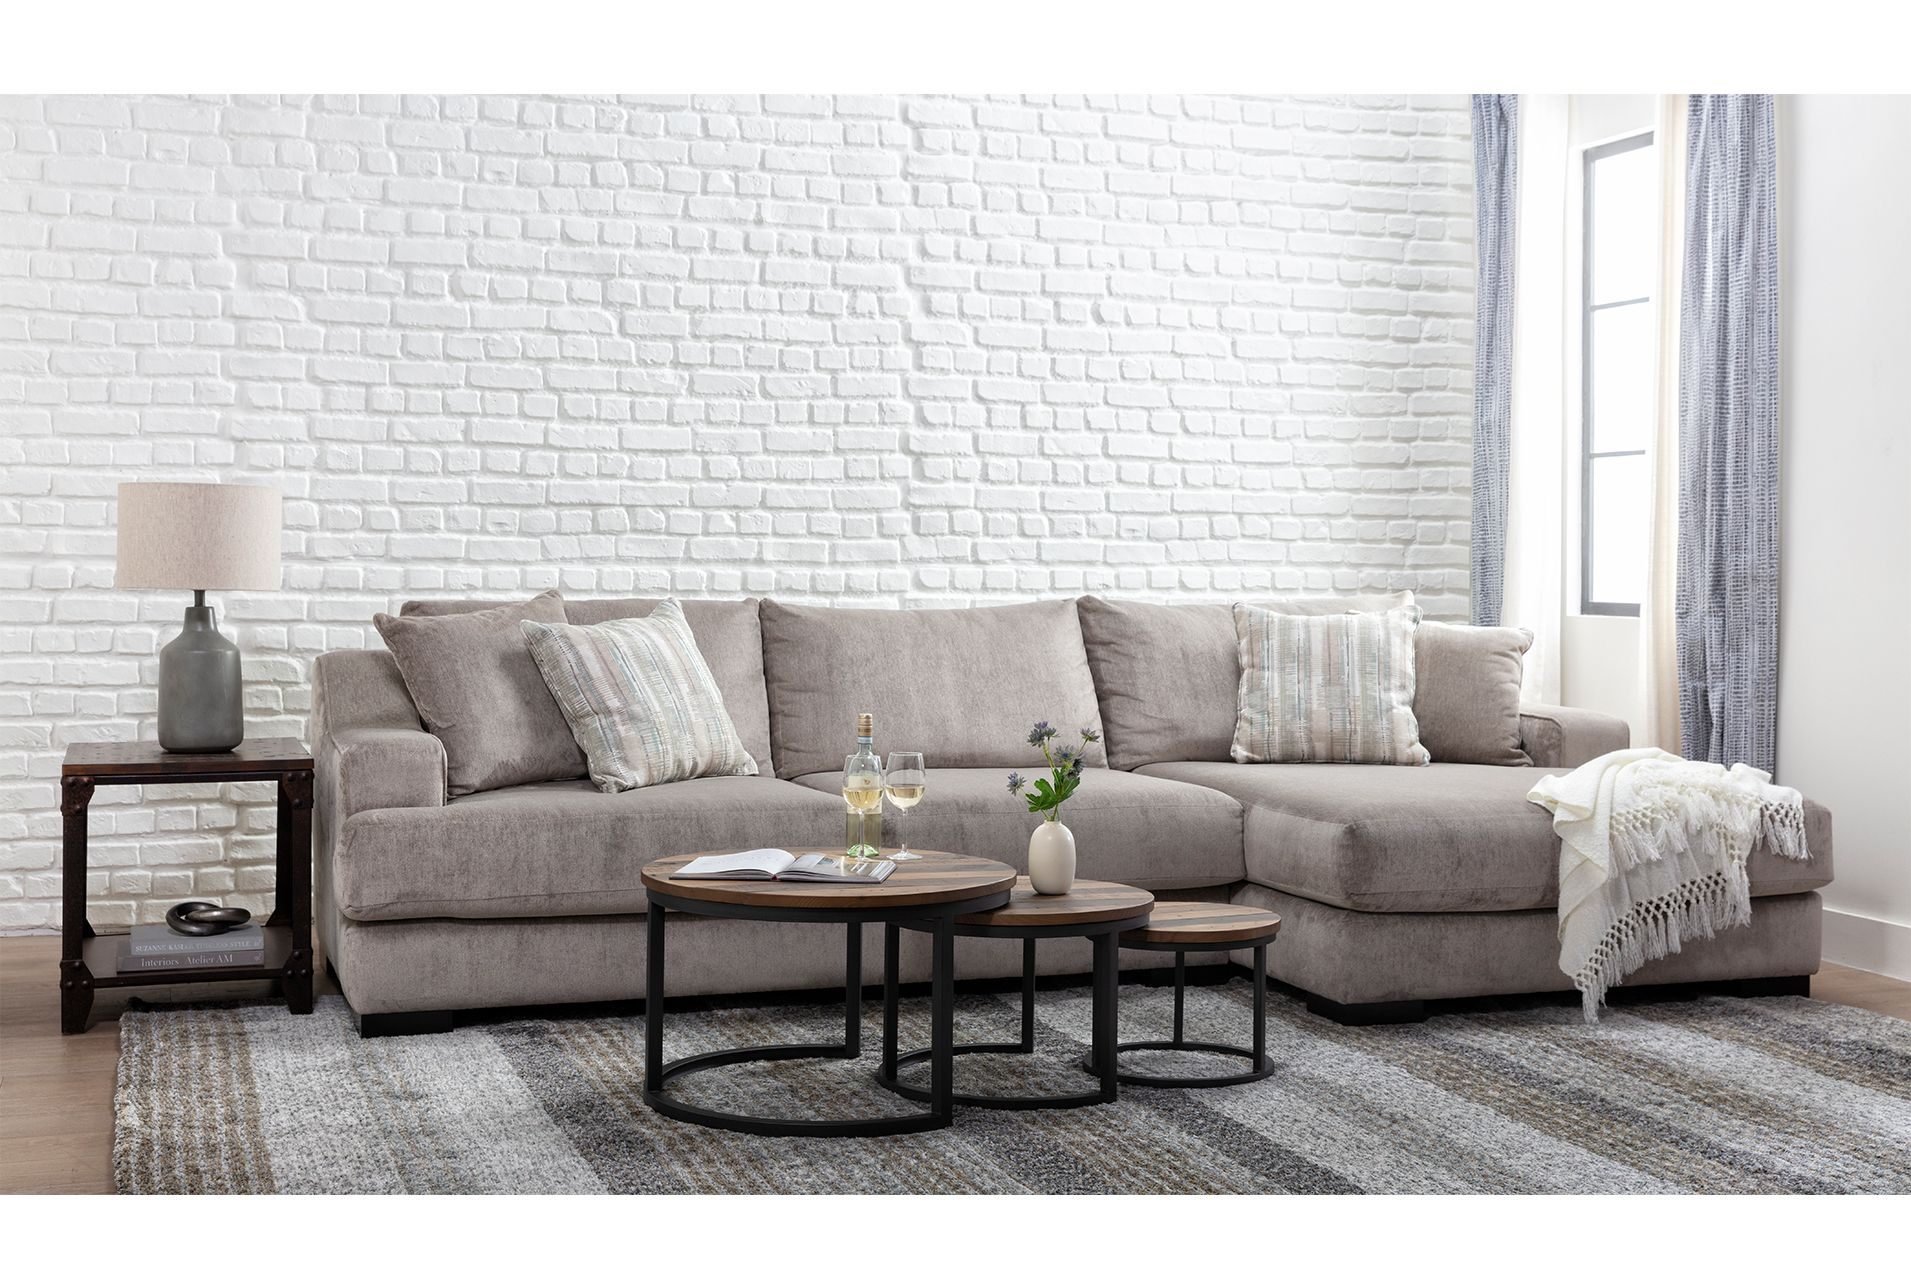 Lodge Fog 2 Piece 139 Sectional With Right Arm Facing Oversized Chaise In 2021 Apartment Bedroom Decor 2 Piece Sectional Sofa Home 2 piece sectional sofa with chaise